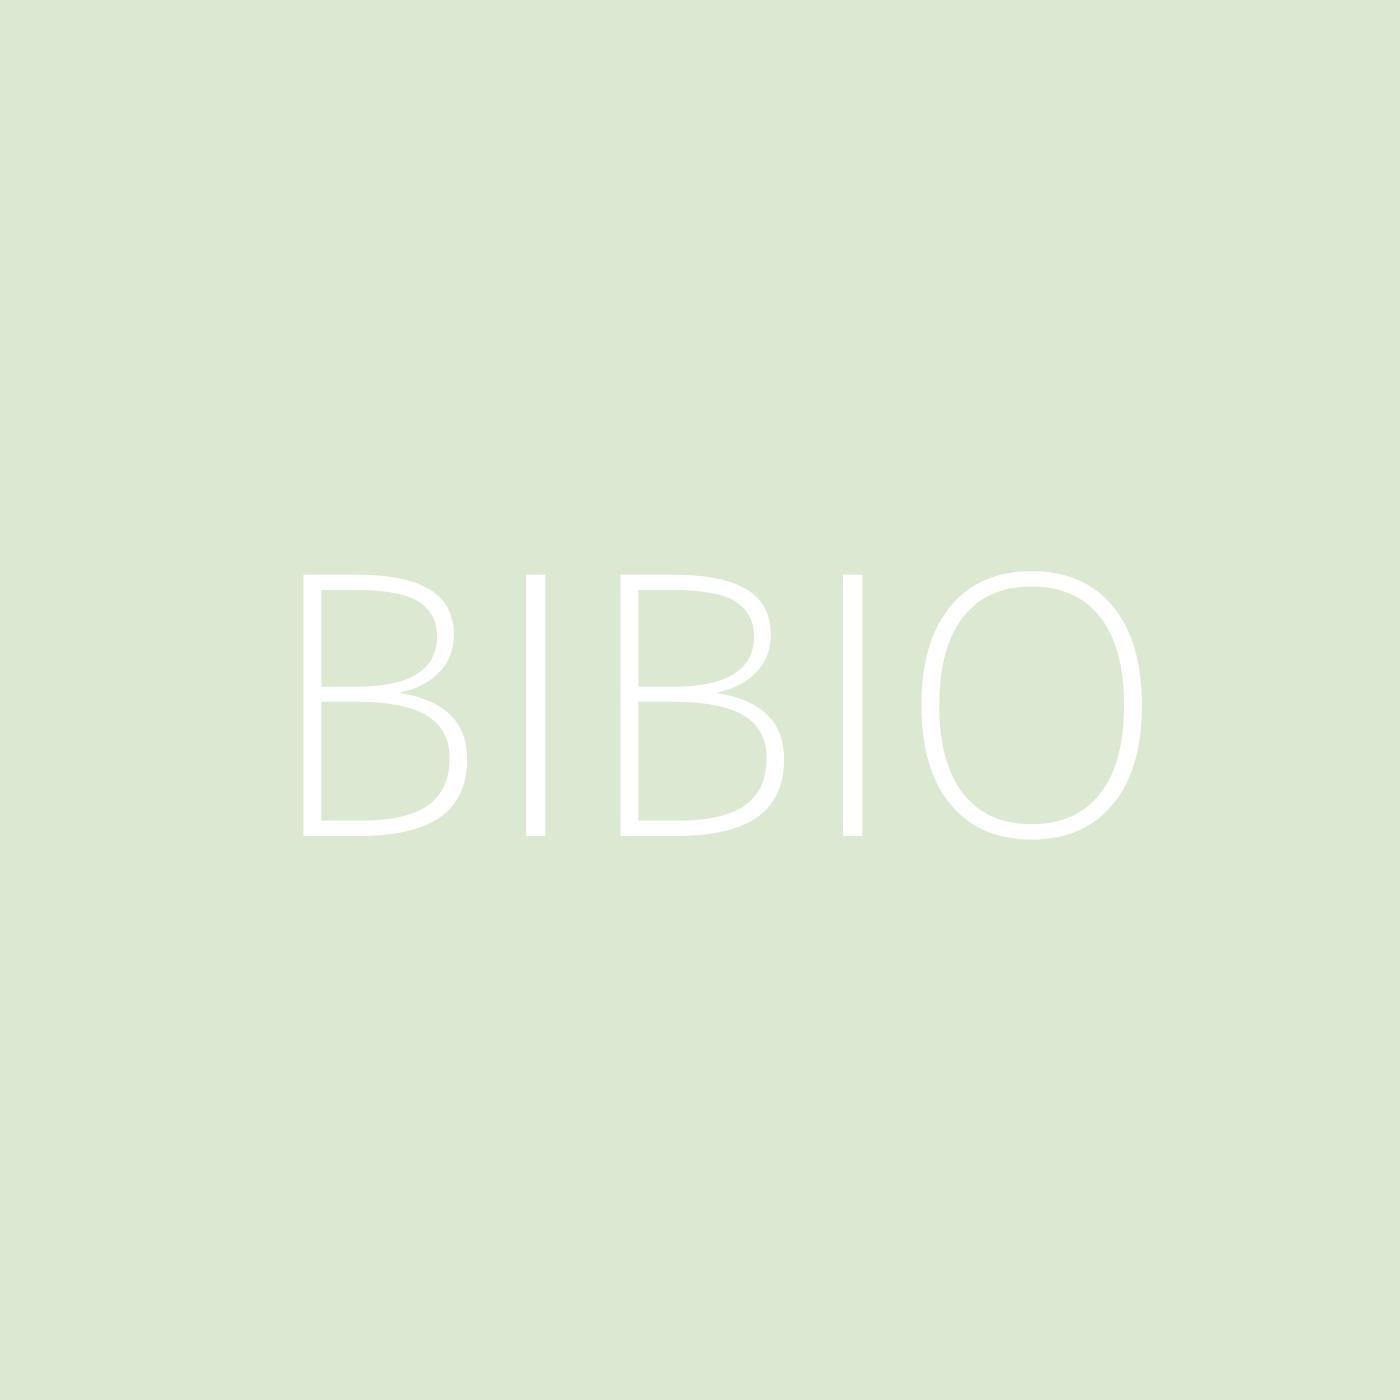 Bibio Playlist Artwork